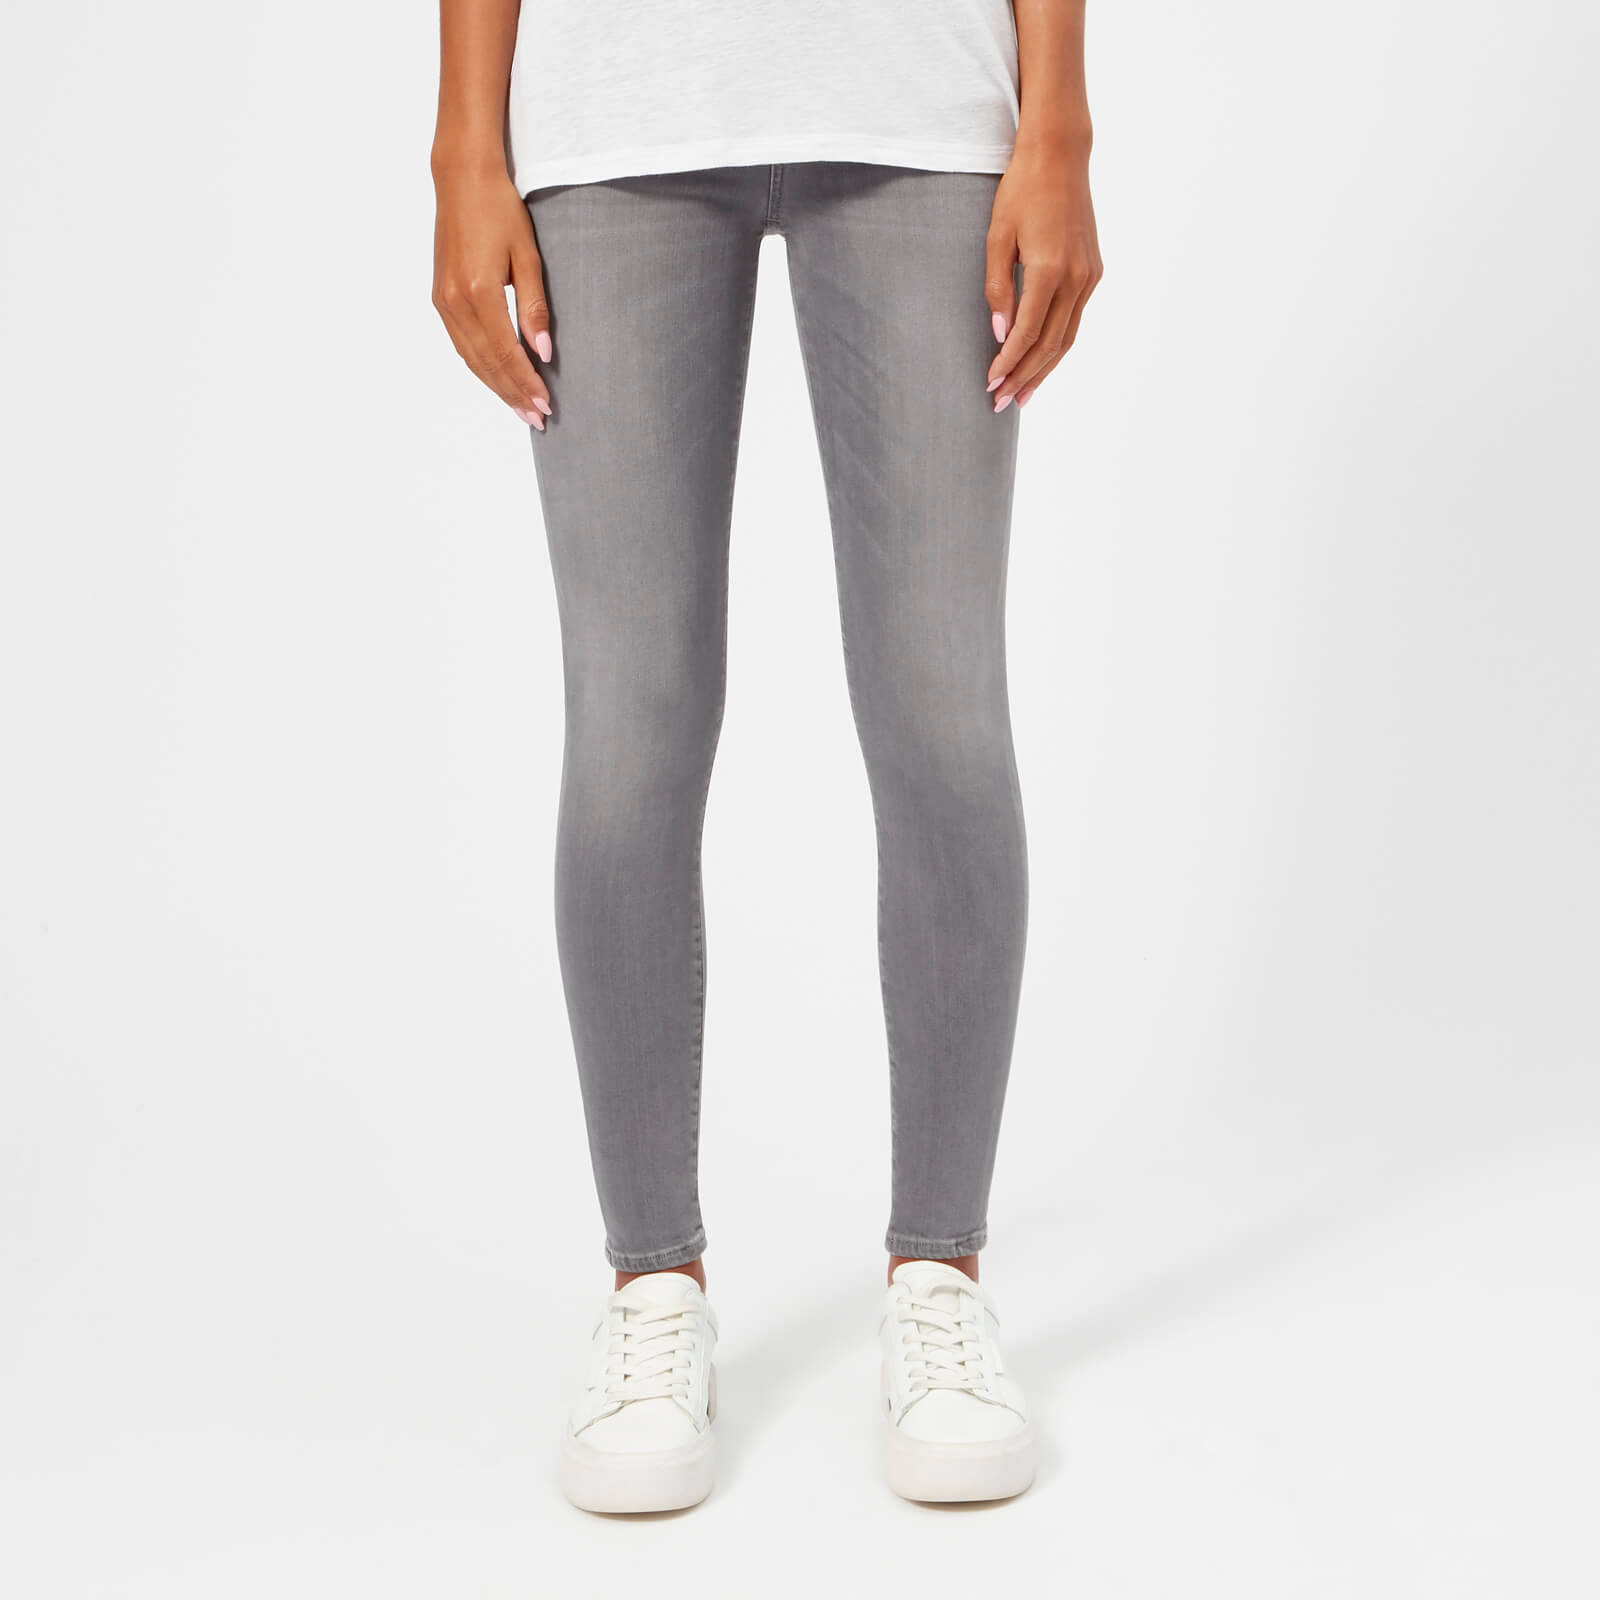 0120f31ab5cf23 7 For All Mankind Women's The Skinny Crop Jeans - Grey Clothing | TheHut.com